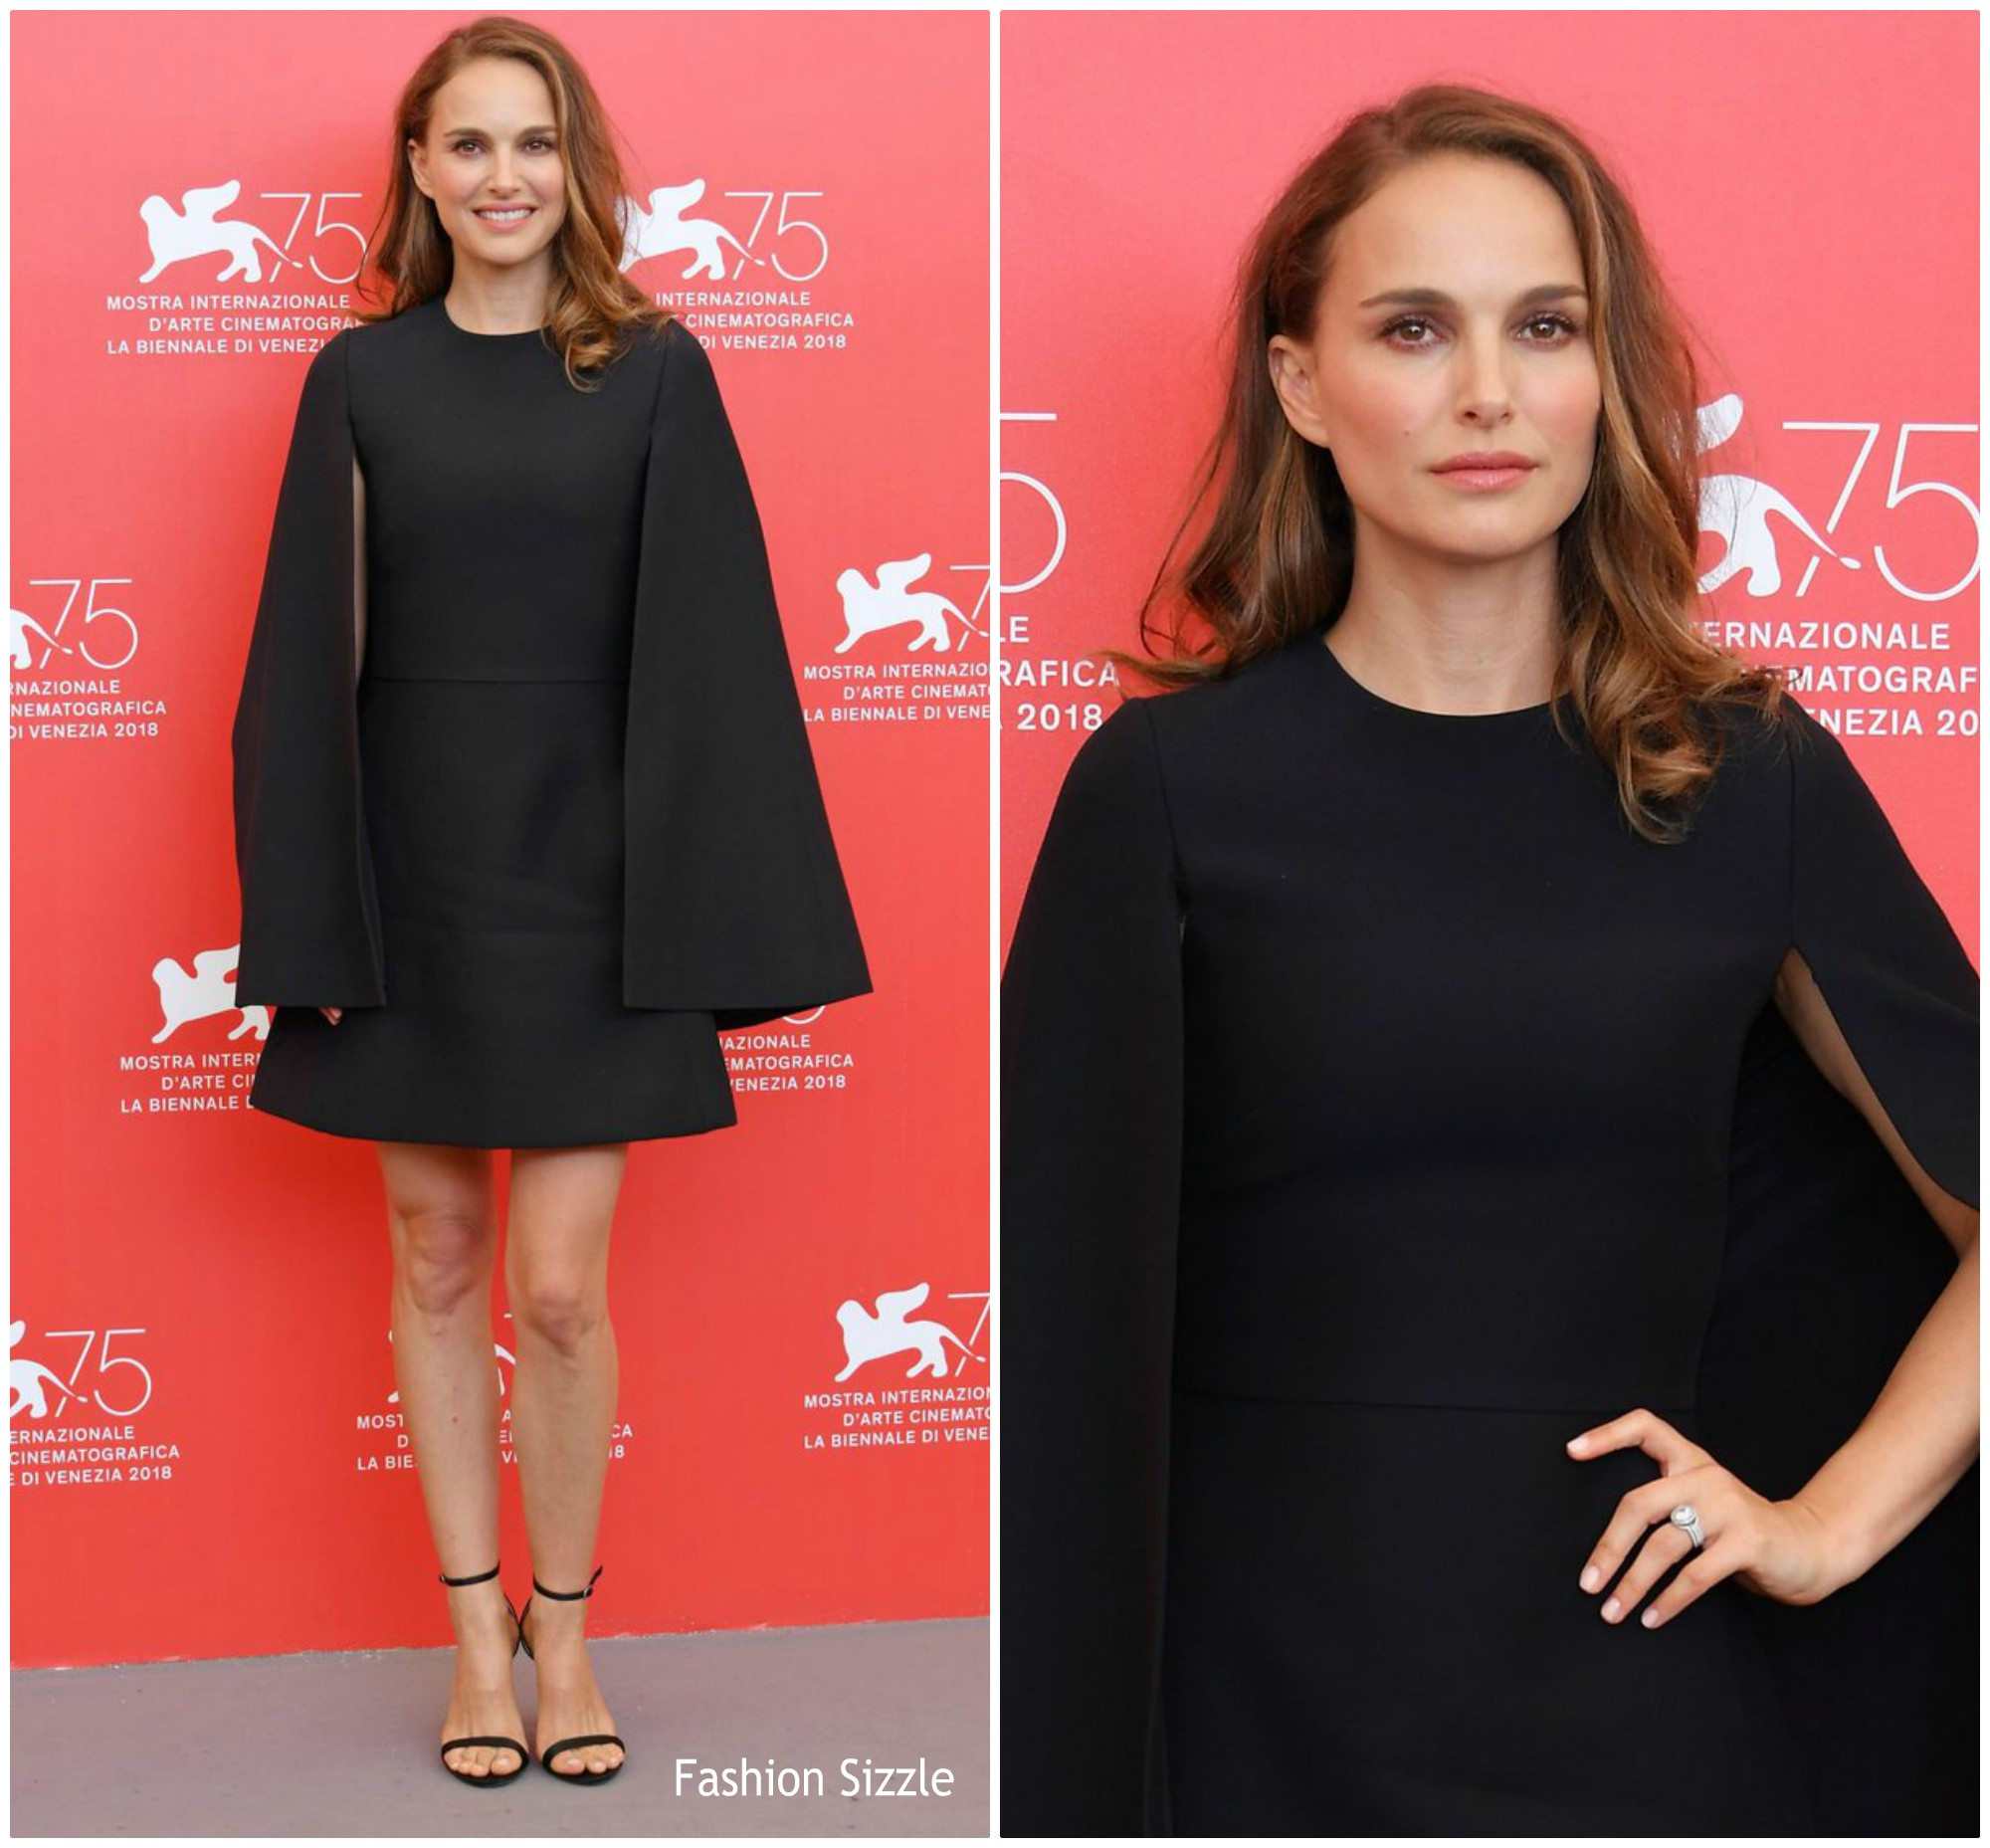 natalie-portman-in-christian-dior-vox-lux-venice-film-festival-photocall